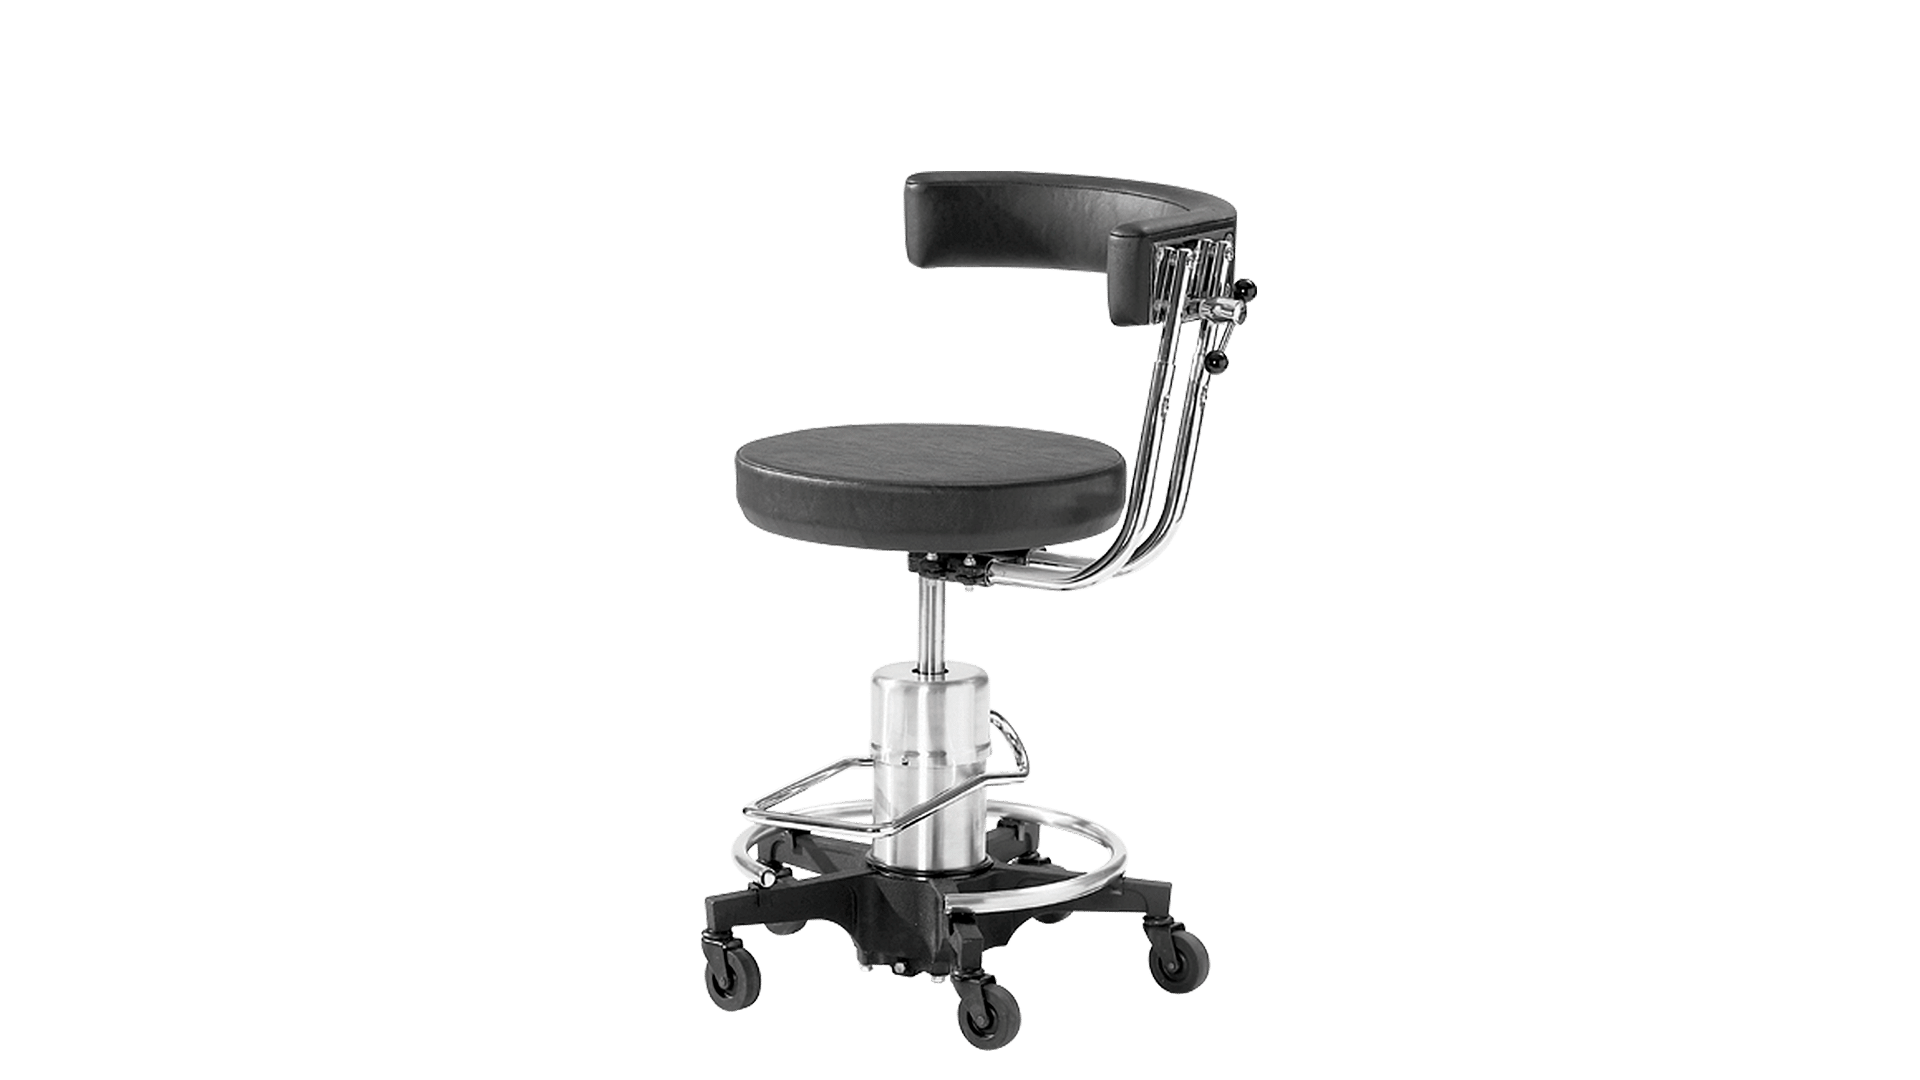 Reliance 556 Hydraulic Surgical Stool Ent Supplies